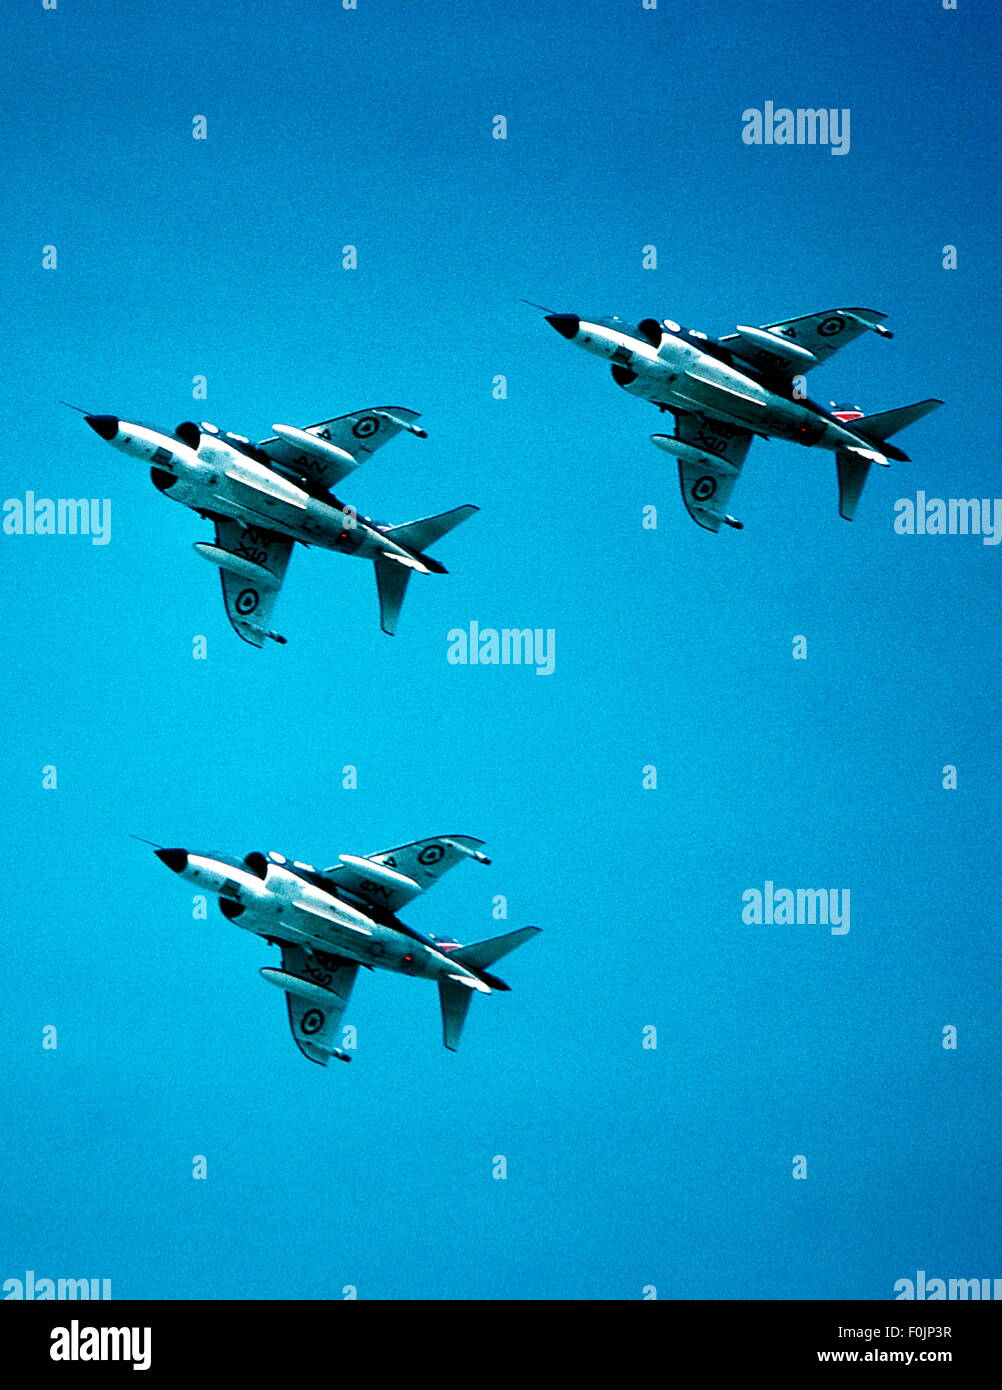 AJAXNETPHOTO - AIR - 3 SEA HARRIERS FROM 800 SQDN. IN FORMATION. PHOTO:VIV TOWNLEY/AJAX. 